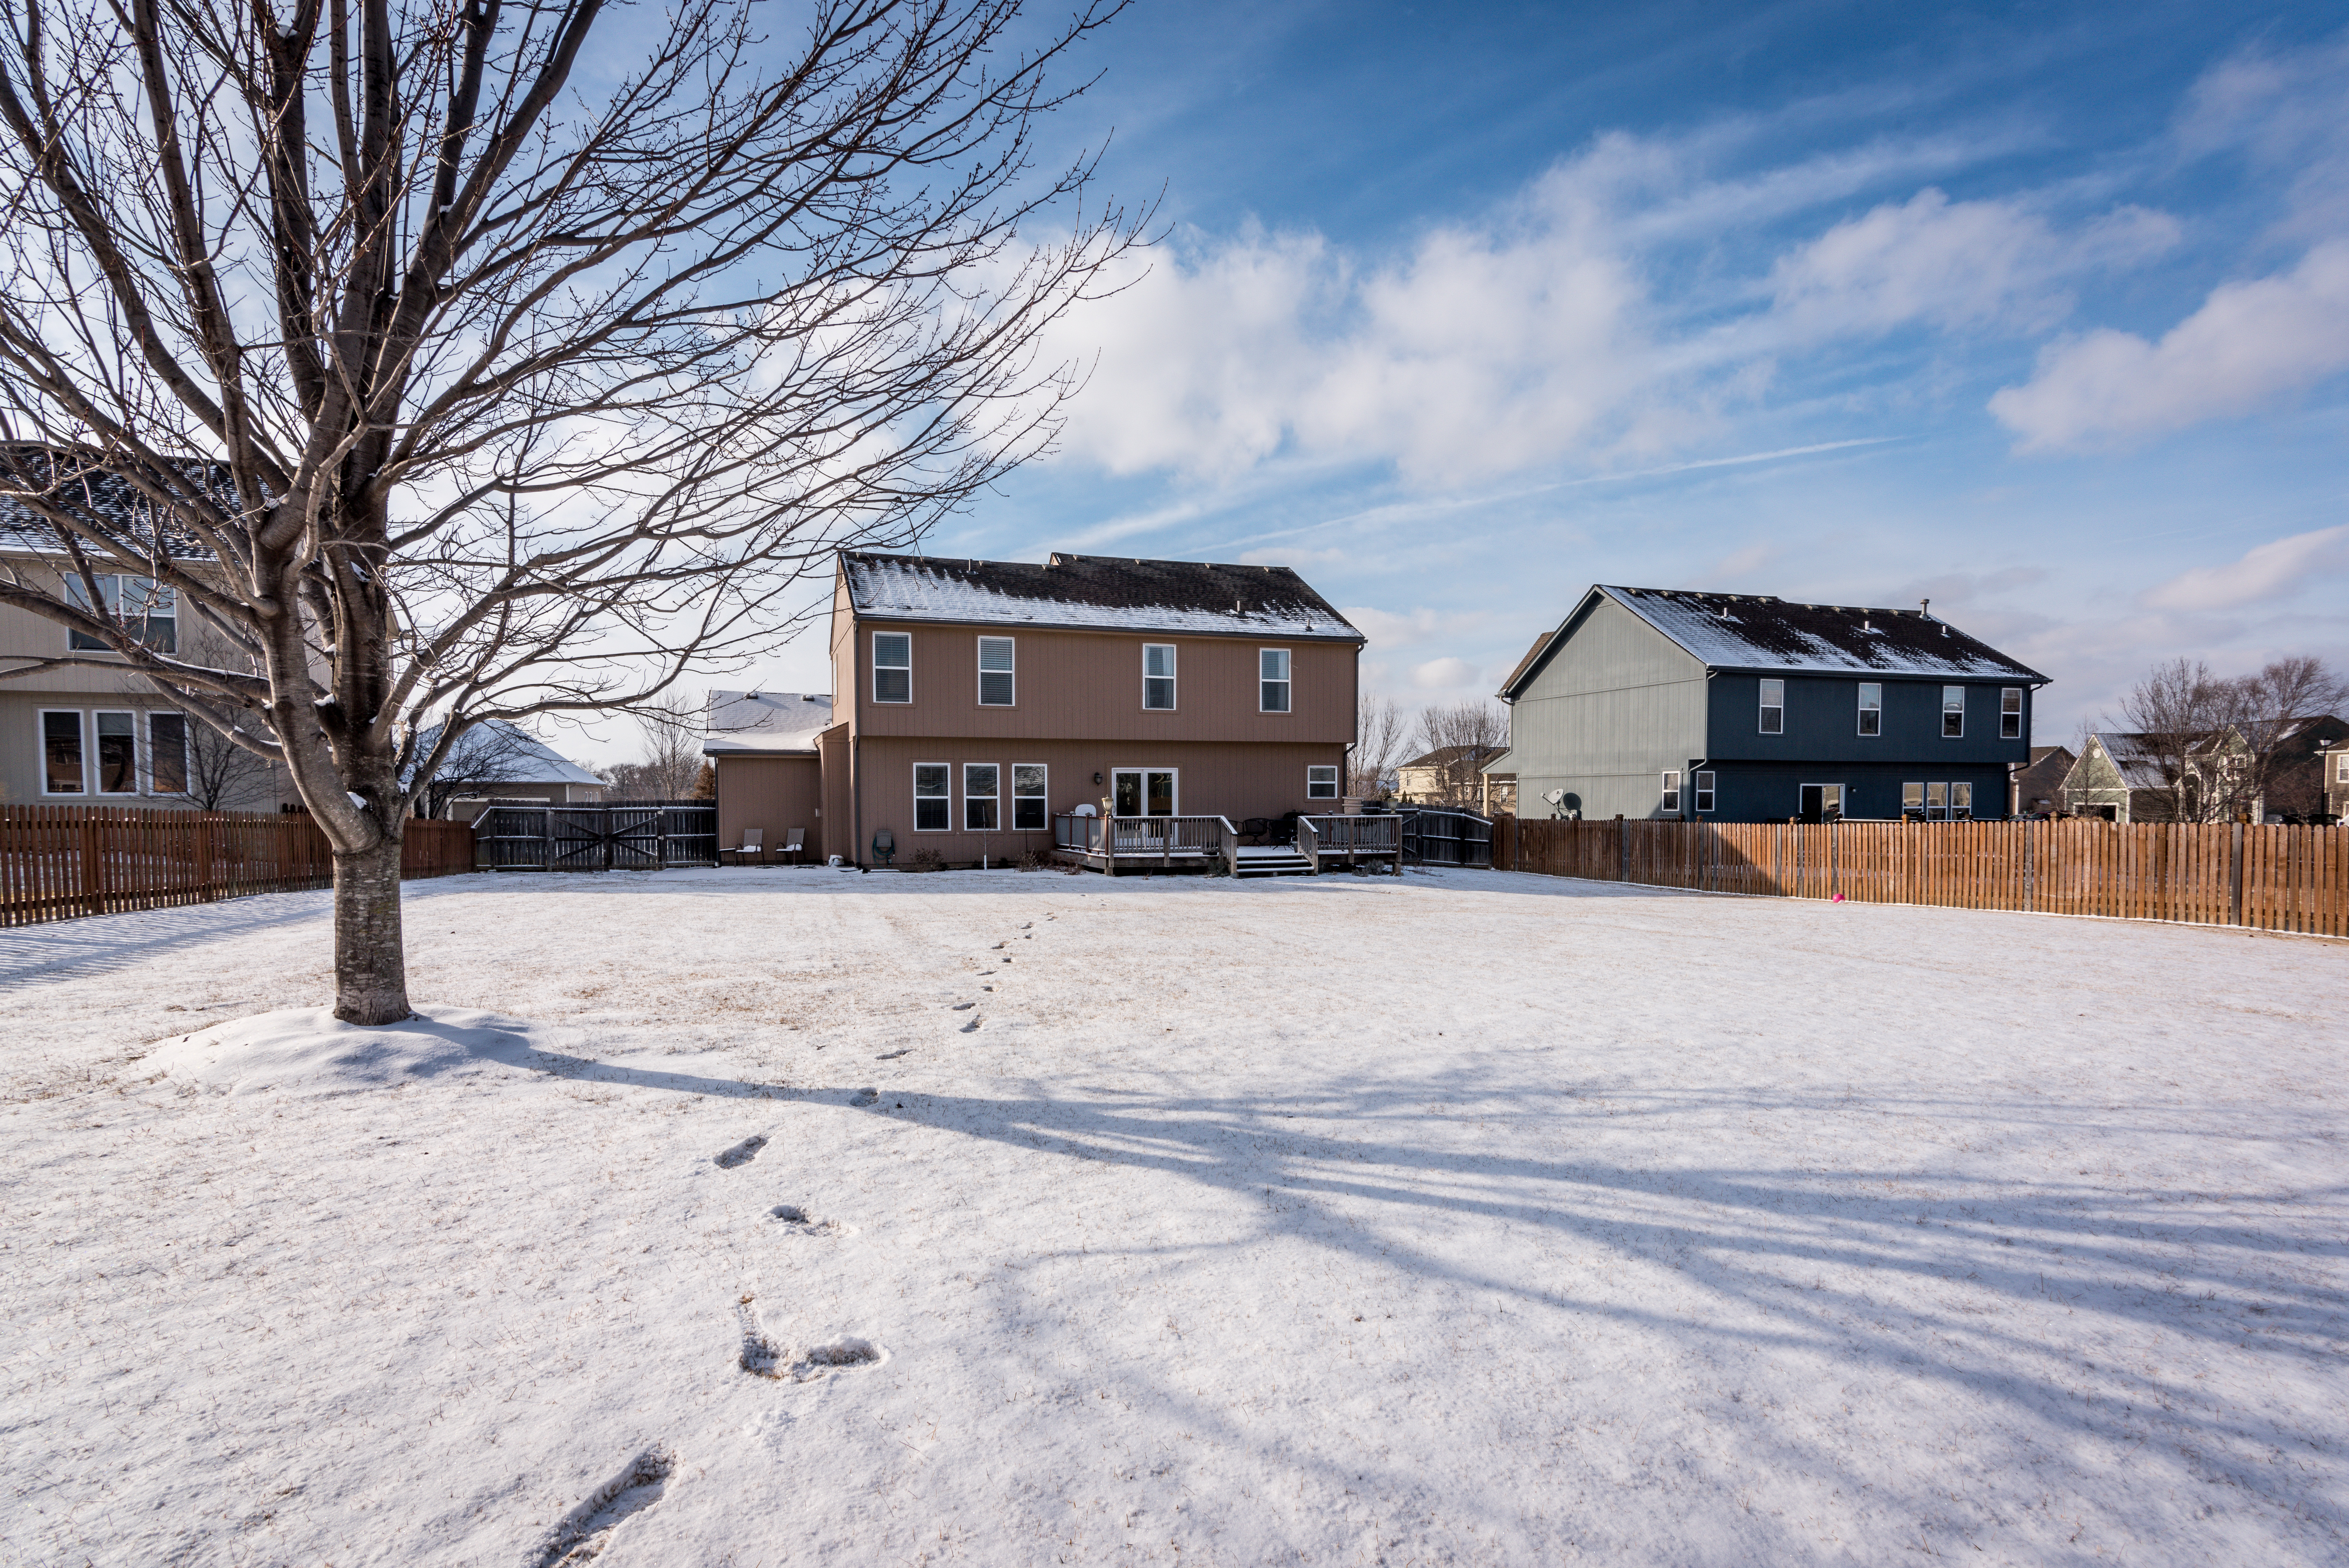 4421 N 122nd St, KCK - exterior-4